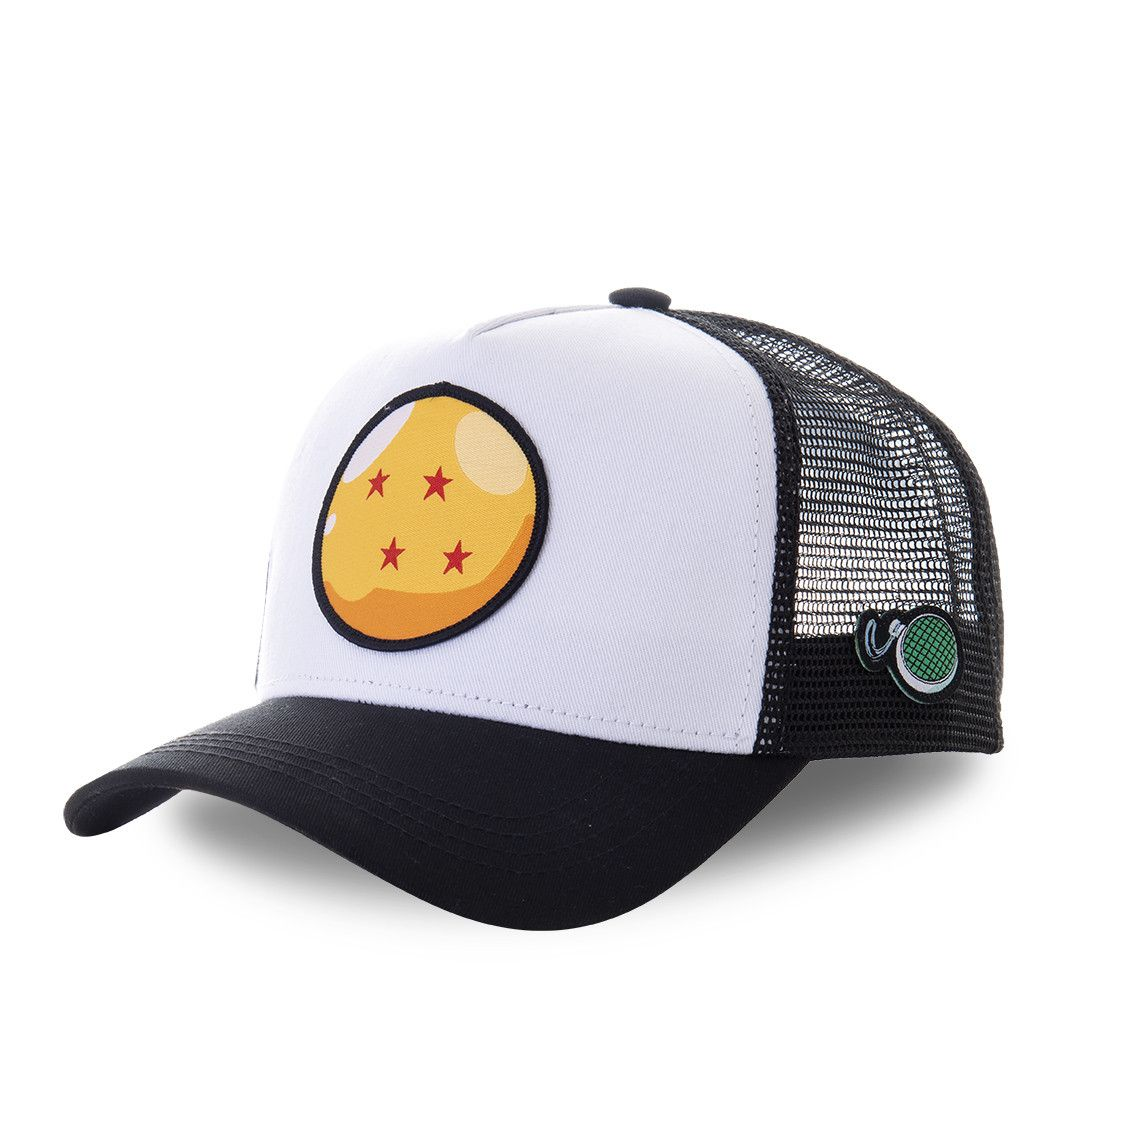 Casquette capslab dragon ball z 3 cristal blanc (photo)